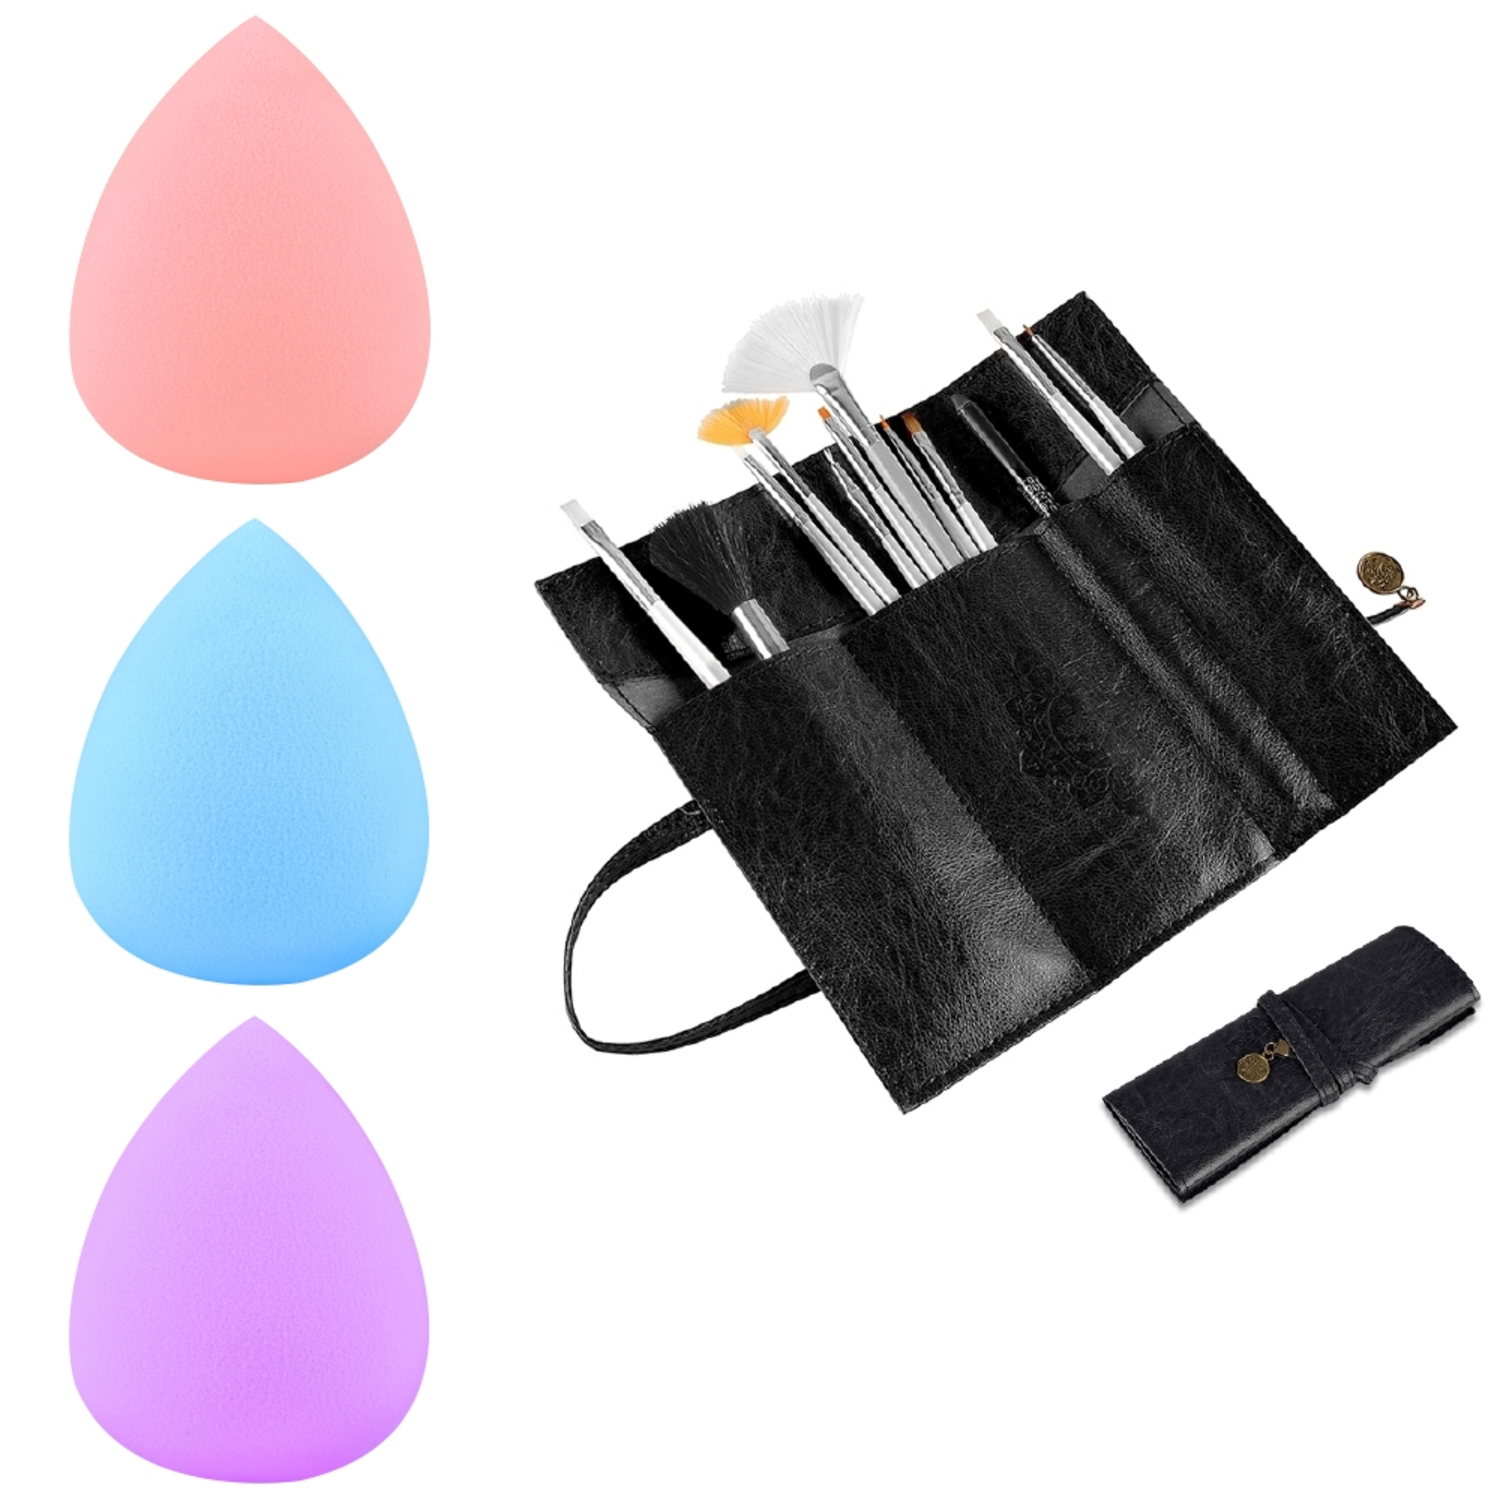 Zodaca Black Retro Roll Up Leather Make up Cosmetic Pencil Case Bag+3x Sponge Blender Flawless Droplets